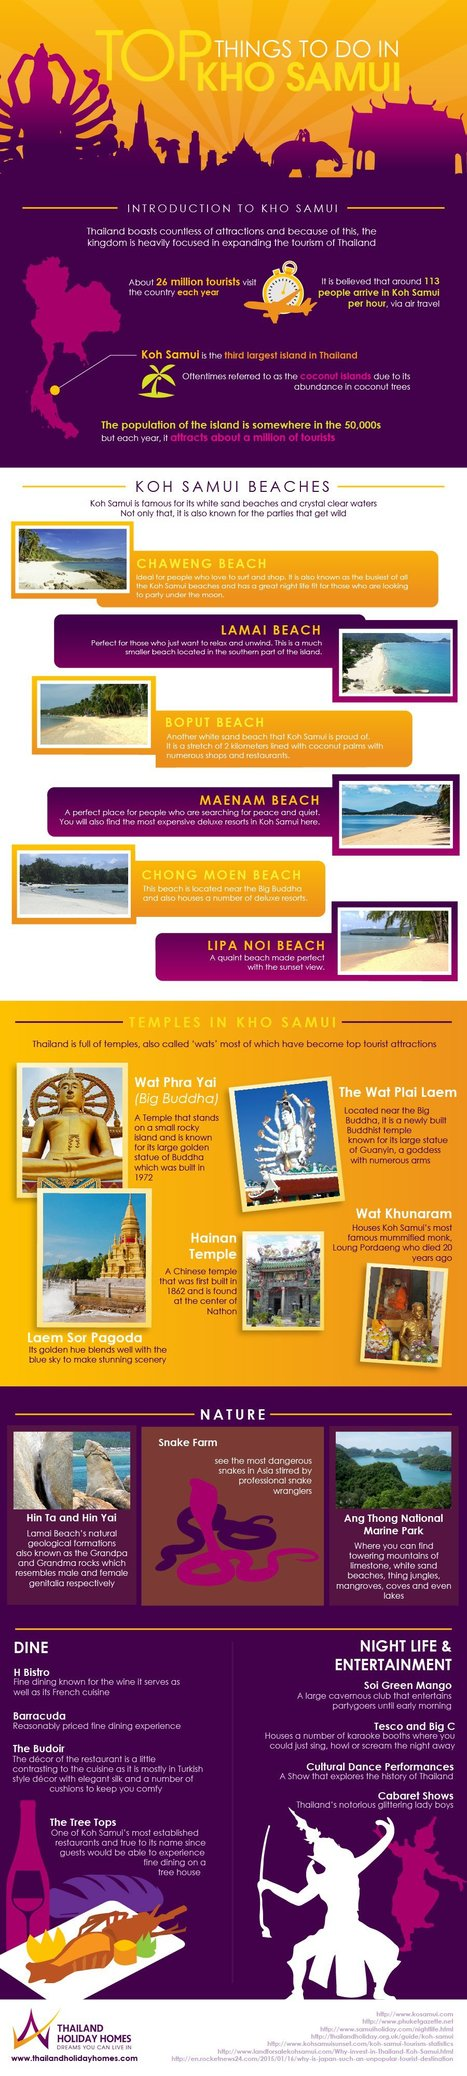 Top Things You Can Do in Koh Samui | Infographics | Scoop.it